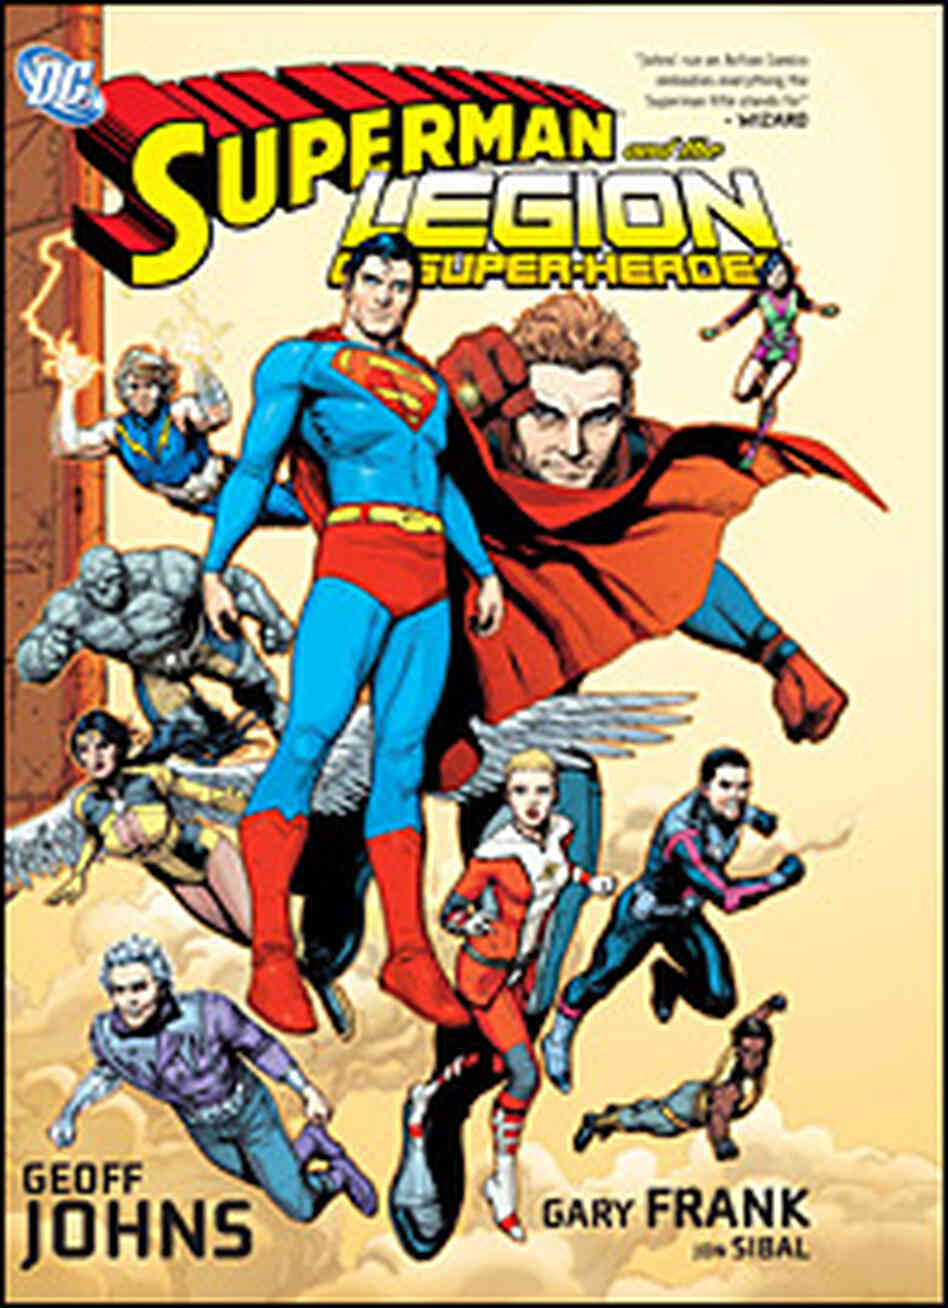 'Superman and the Legion of Super-Heroes,' by Geoff Johns and Gary Frank